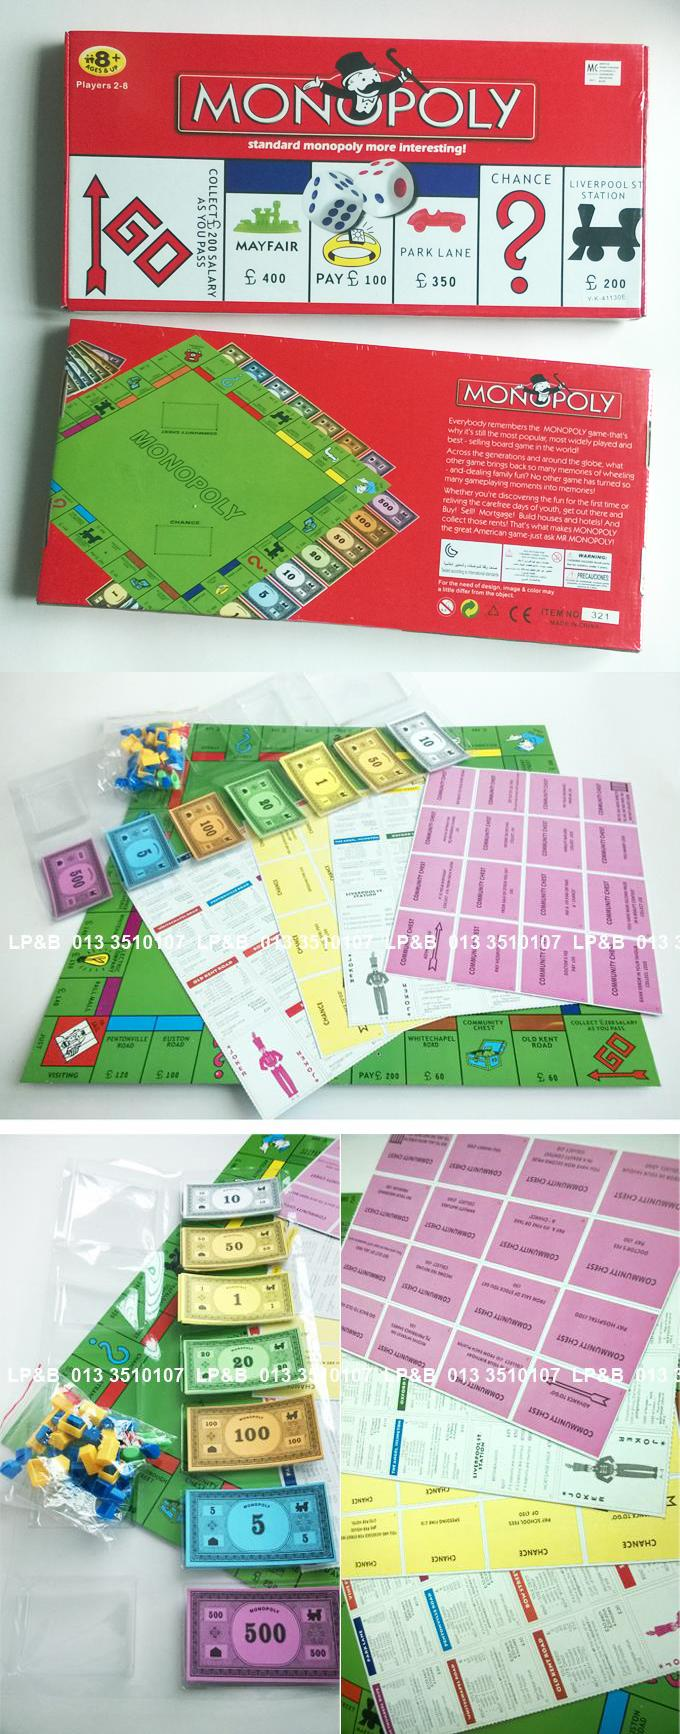 Monopoly Board Games for children and adults